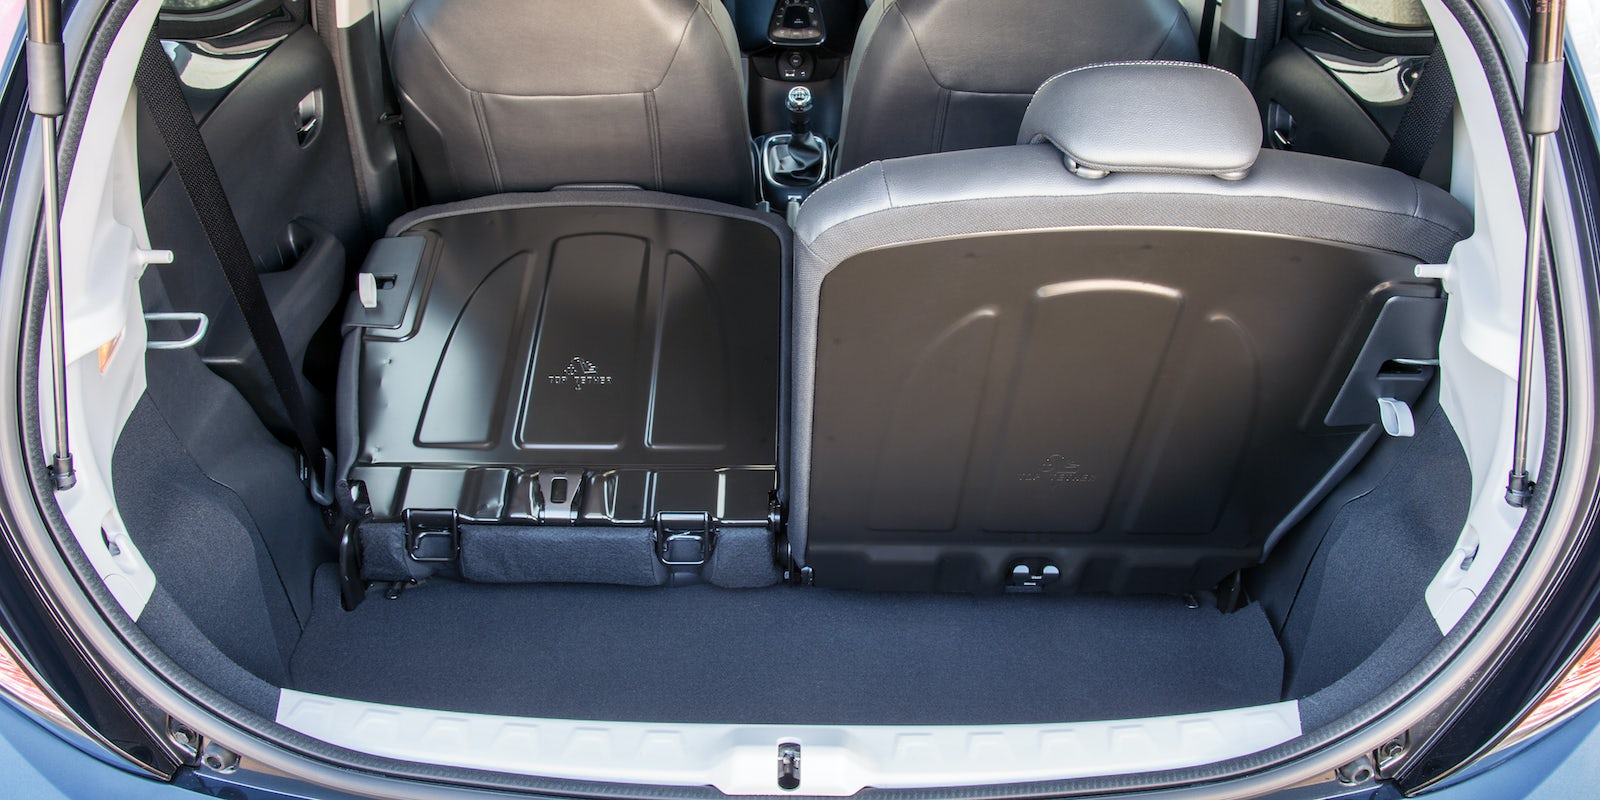 Toyota Build And Price >> Toyota Aygo practicality and boot space | carwow